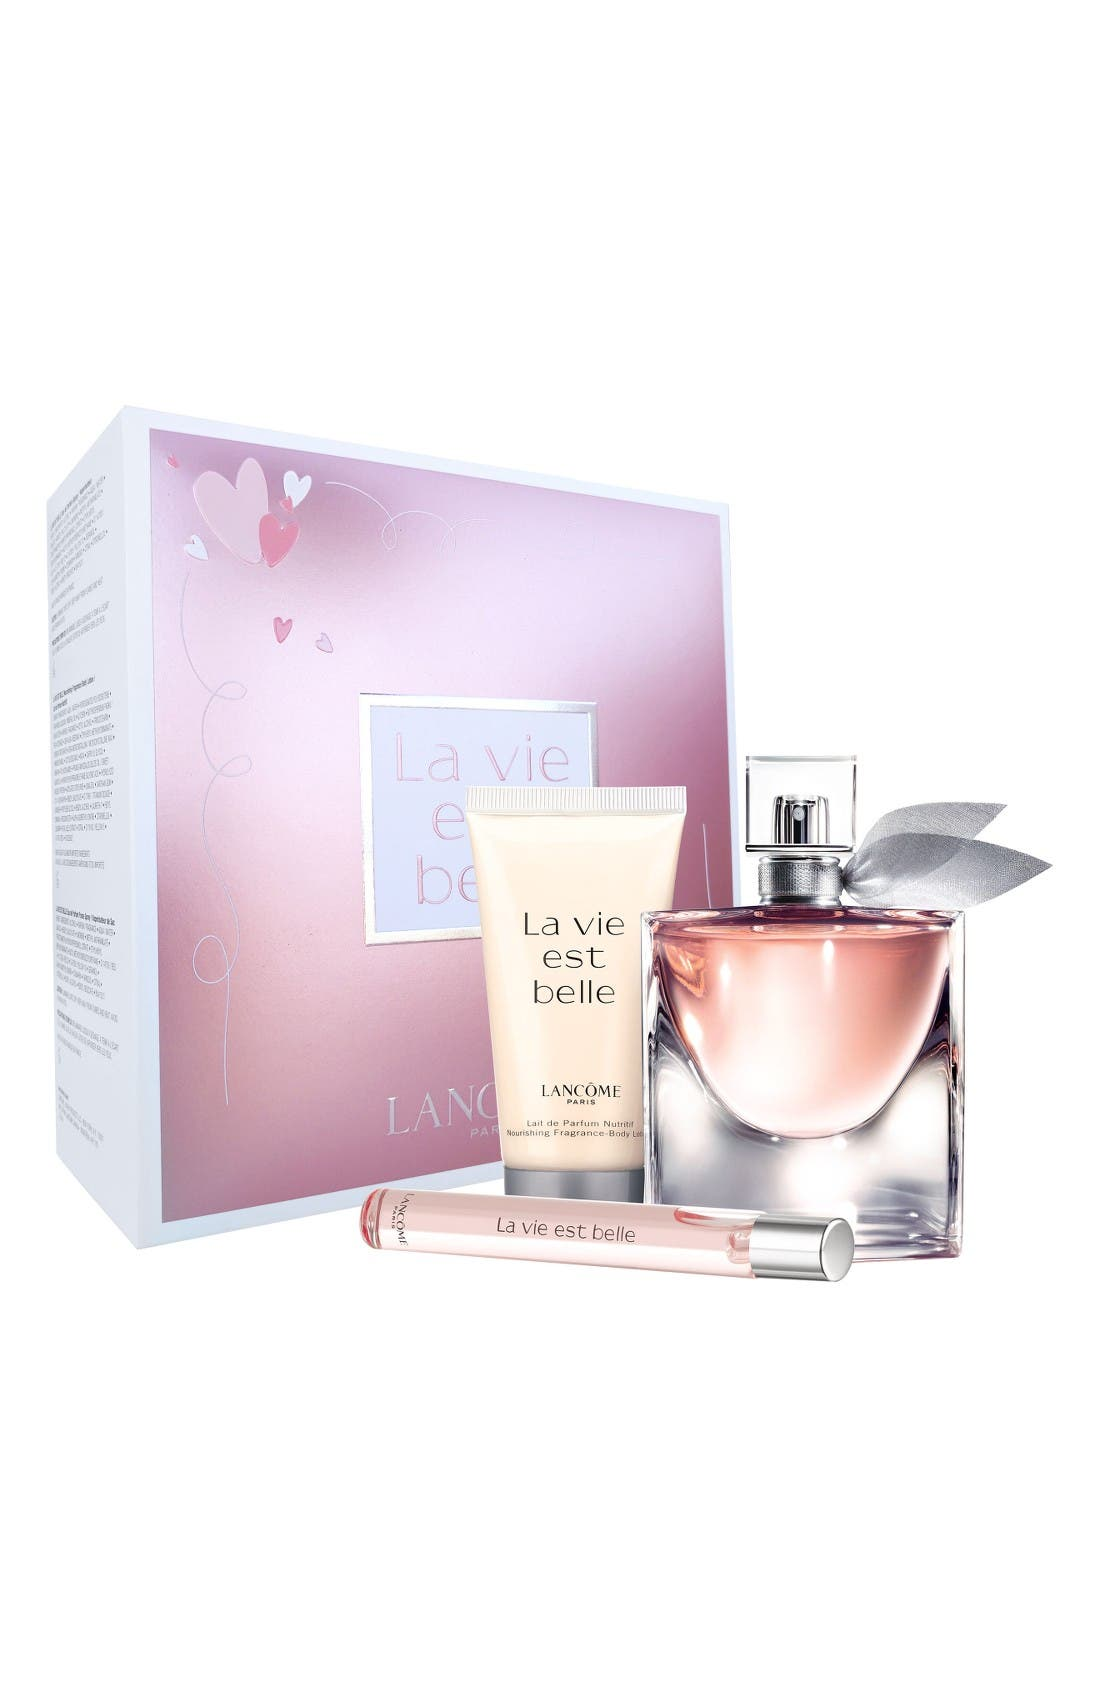 Alternate Image 1 Selected - Lancôme La Vie est Belle Set (Limited Edition) ($122 Value)